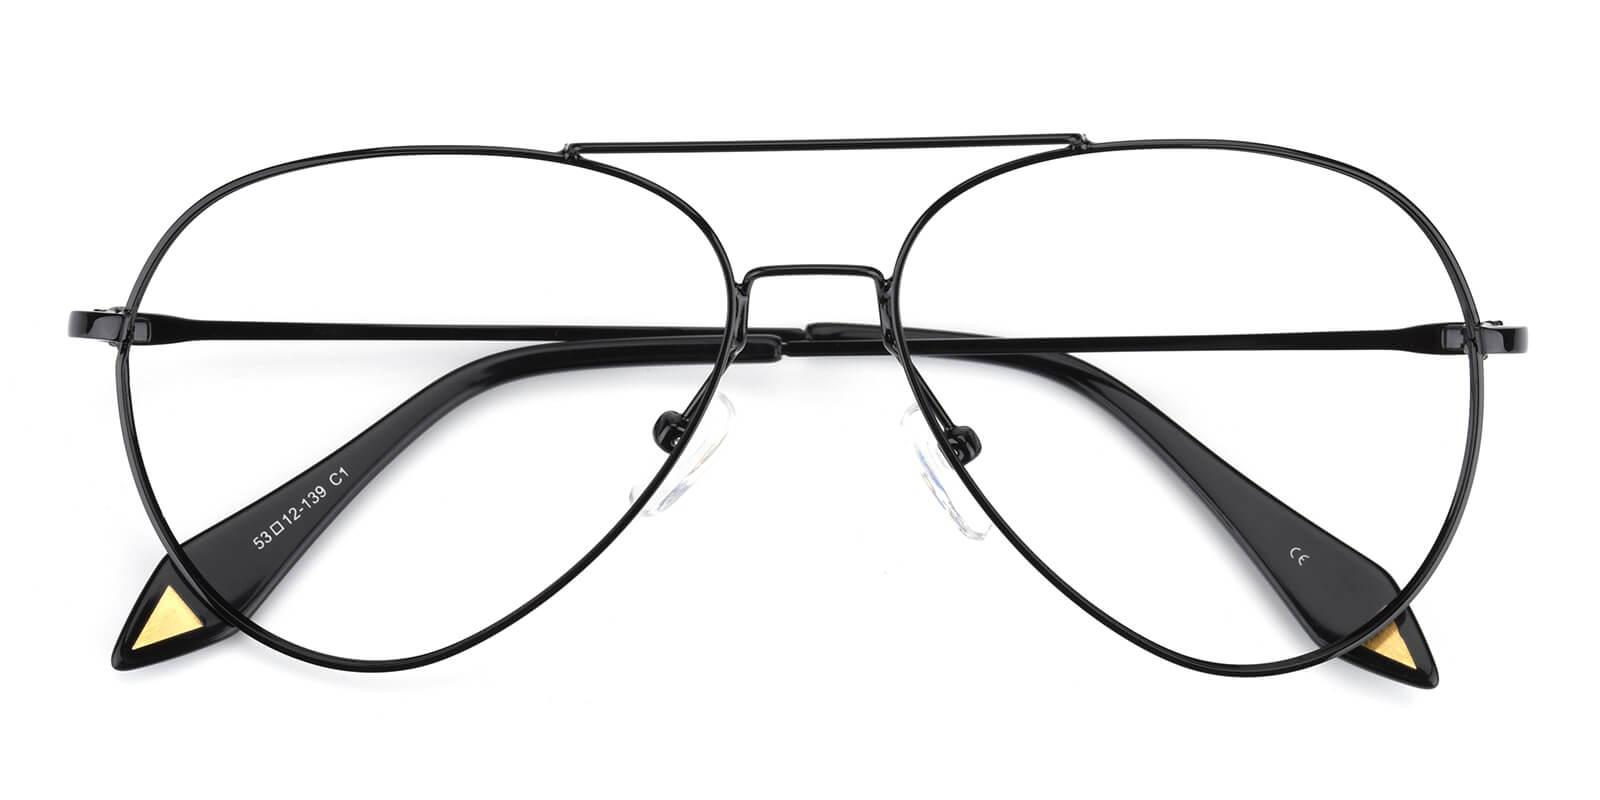 Pilot-Black-Aviator-Metal-Eyeglasses-detail